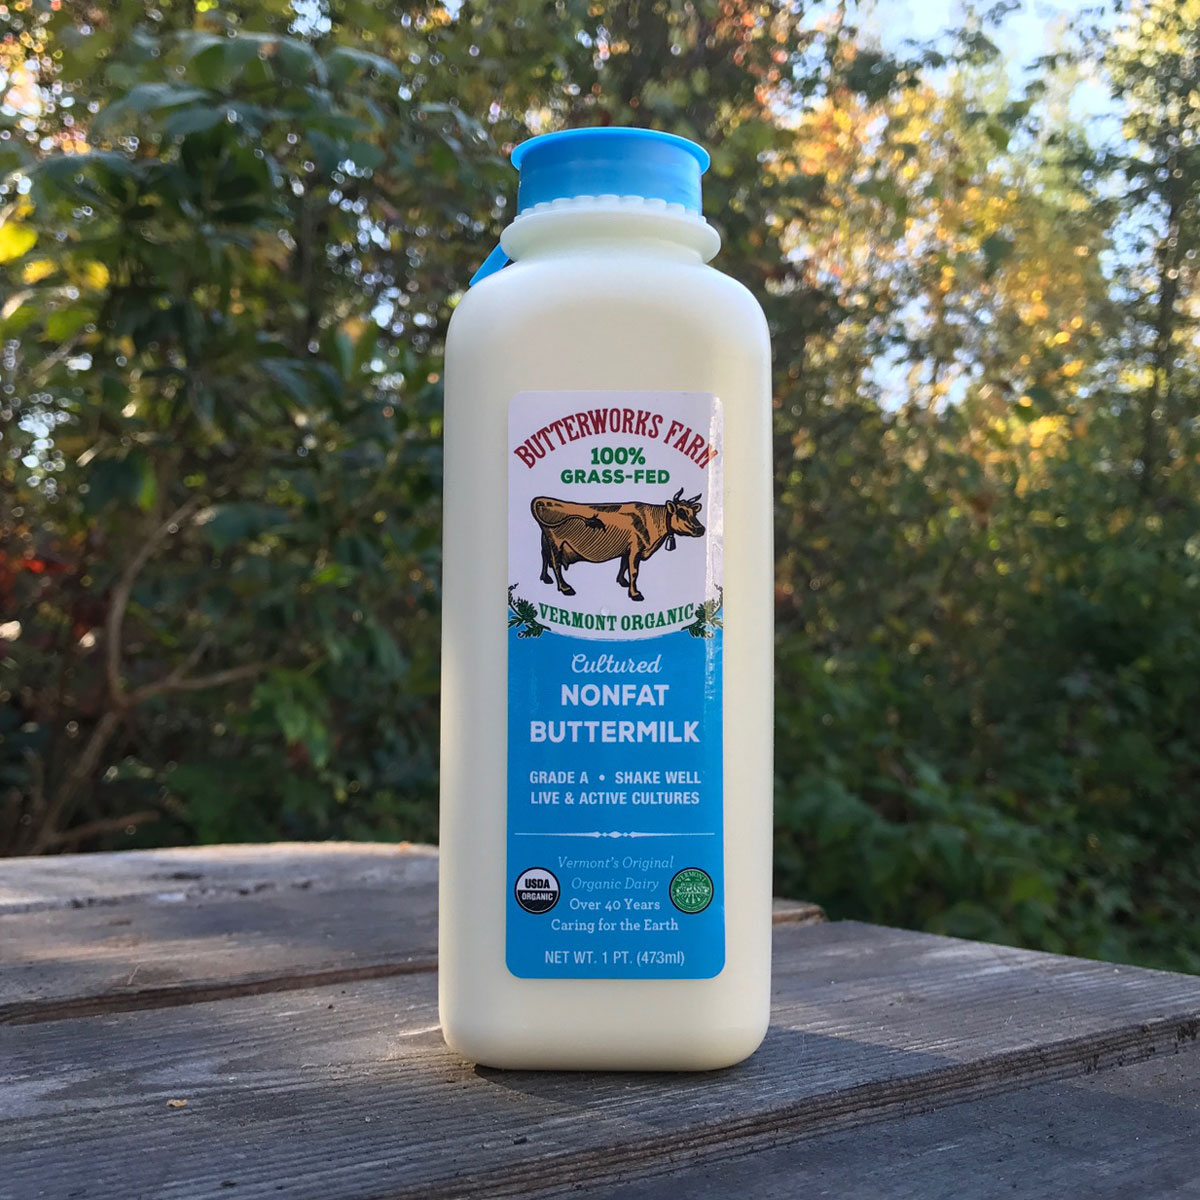 Butterworks Farm Non fat Buttermilk